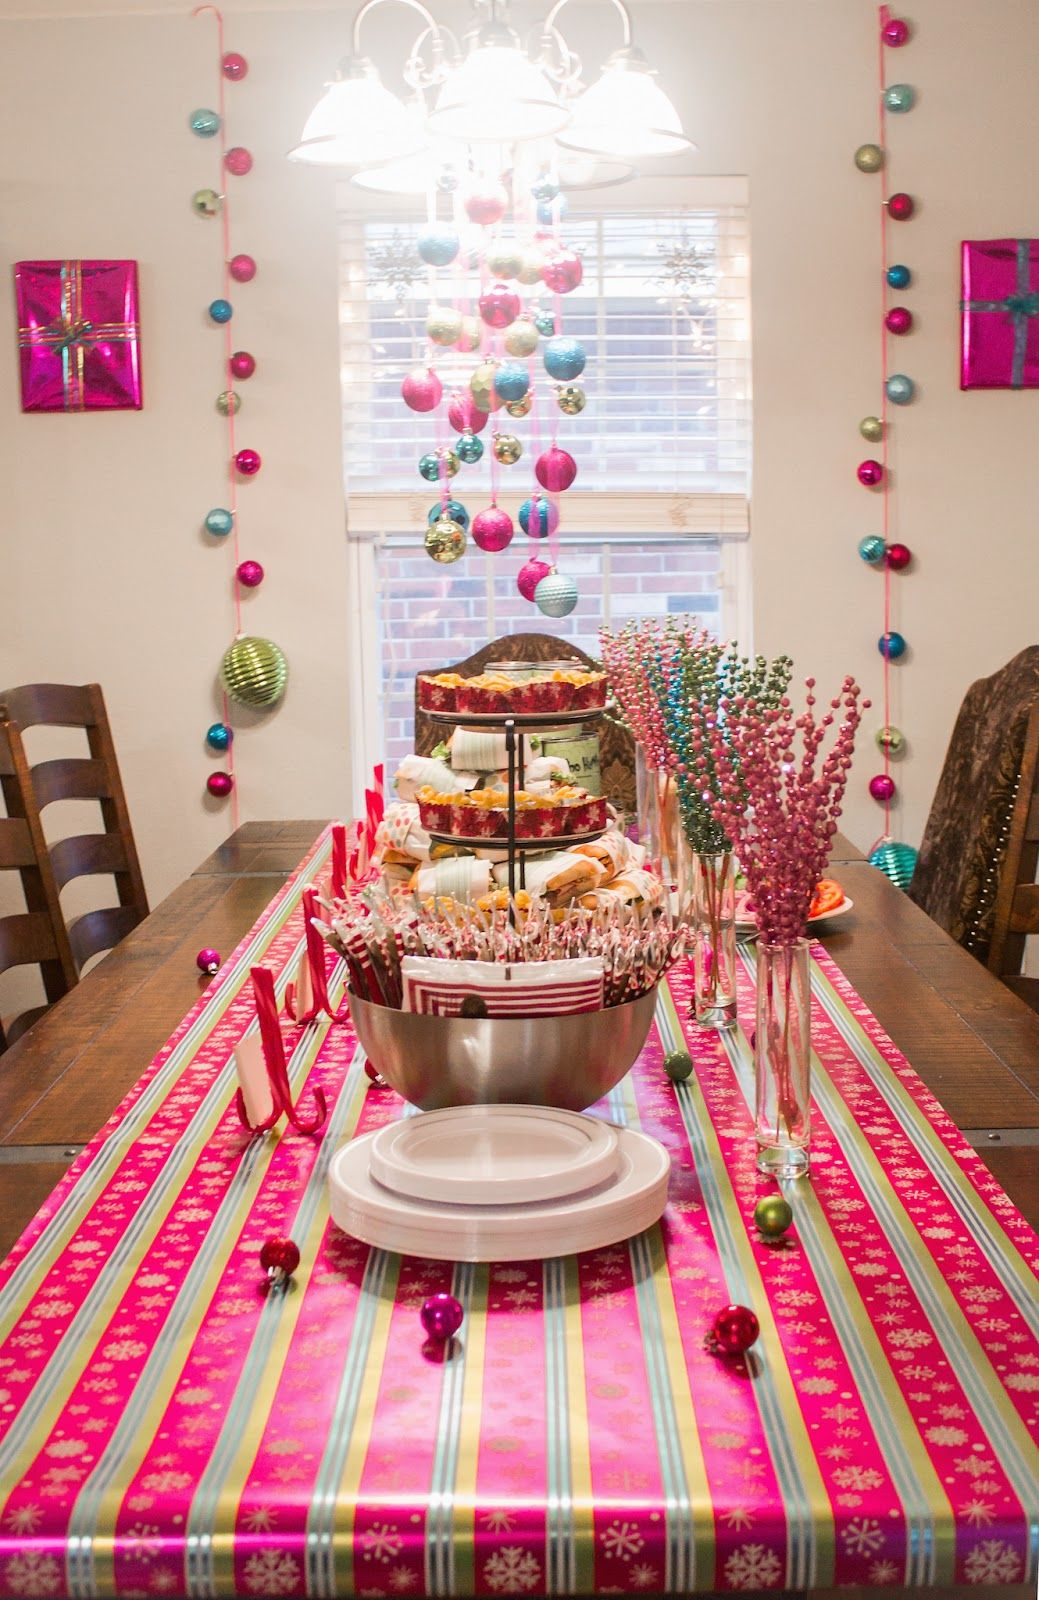 How The Grinch Stole Christmas Cindy Lou Who Inspired Birthday Party Or DIY Decoration Ideas Pink Green Blue And Red Color Scheme